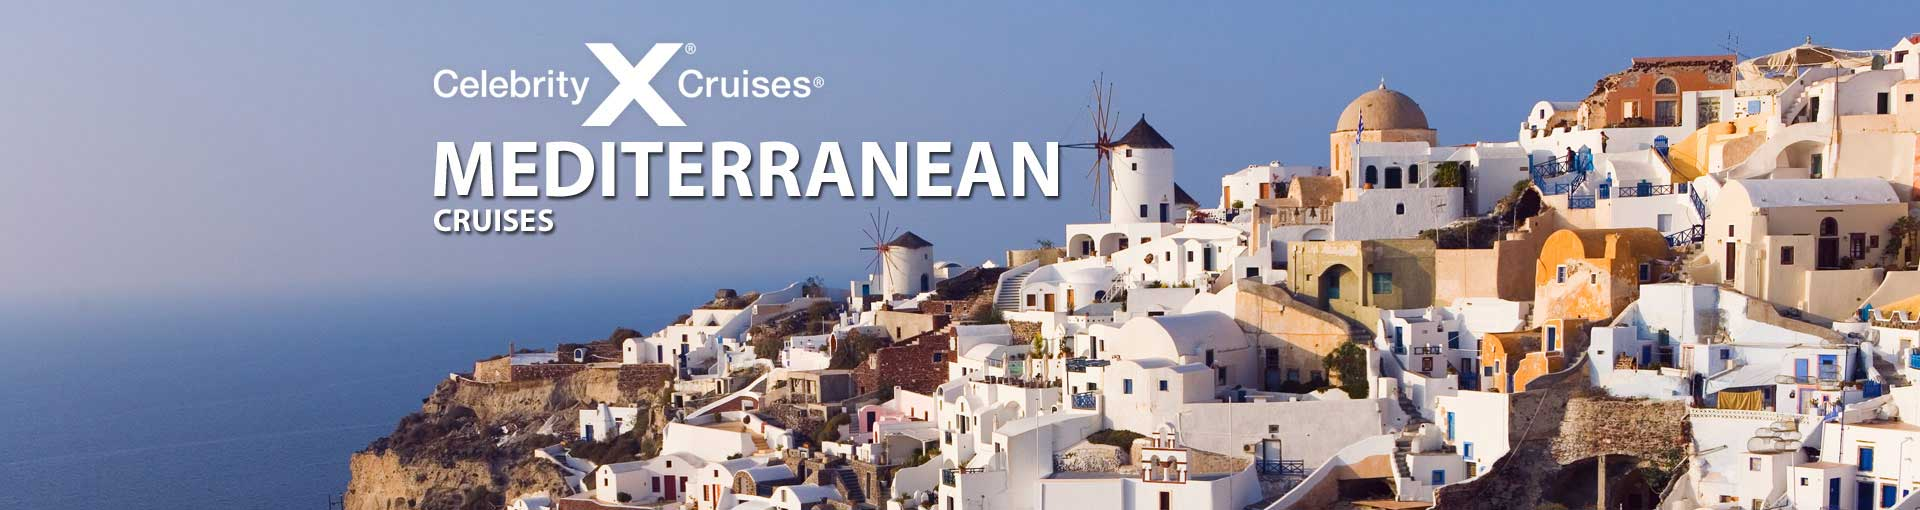 Celebrity Mediterranean Cruise, 9 Nights From ...